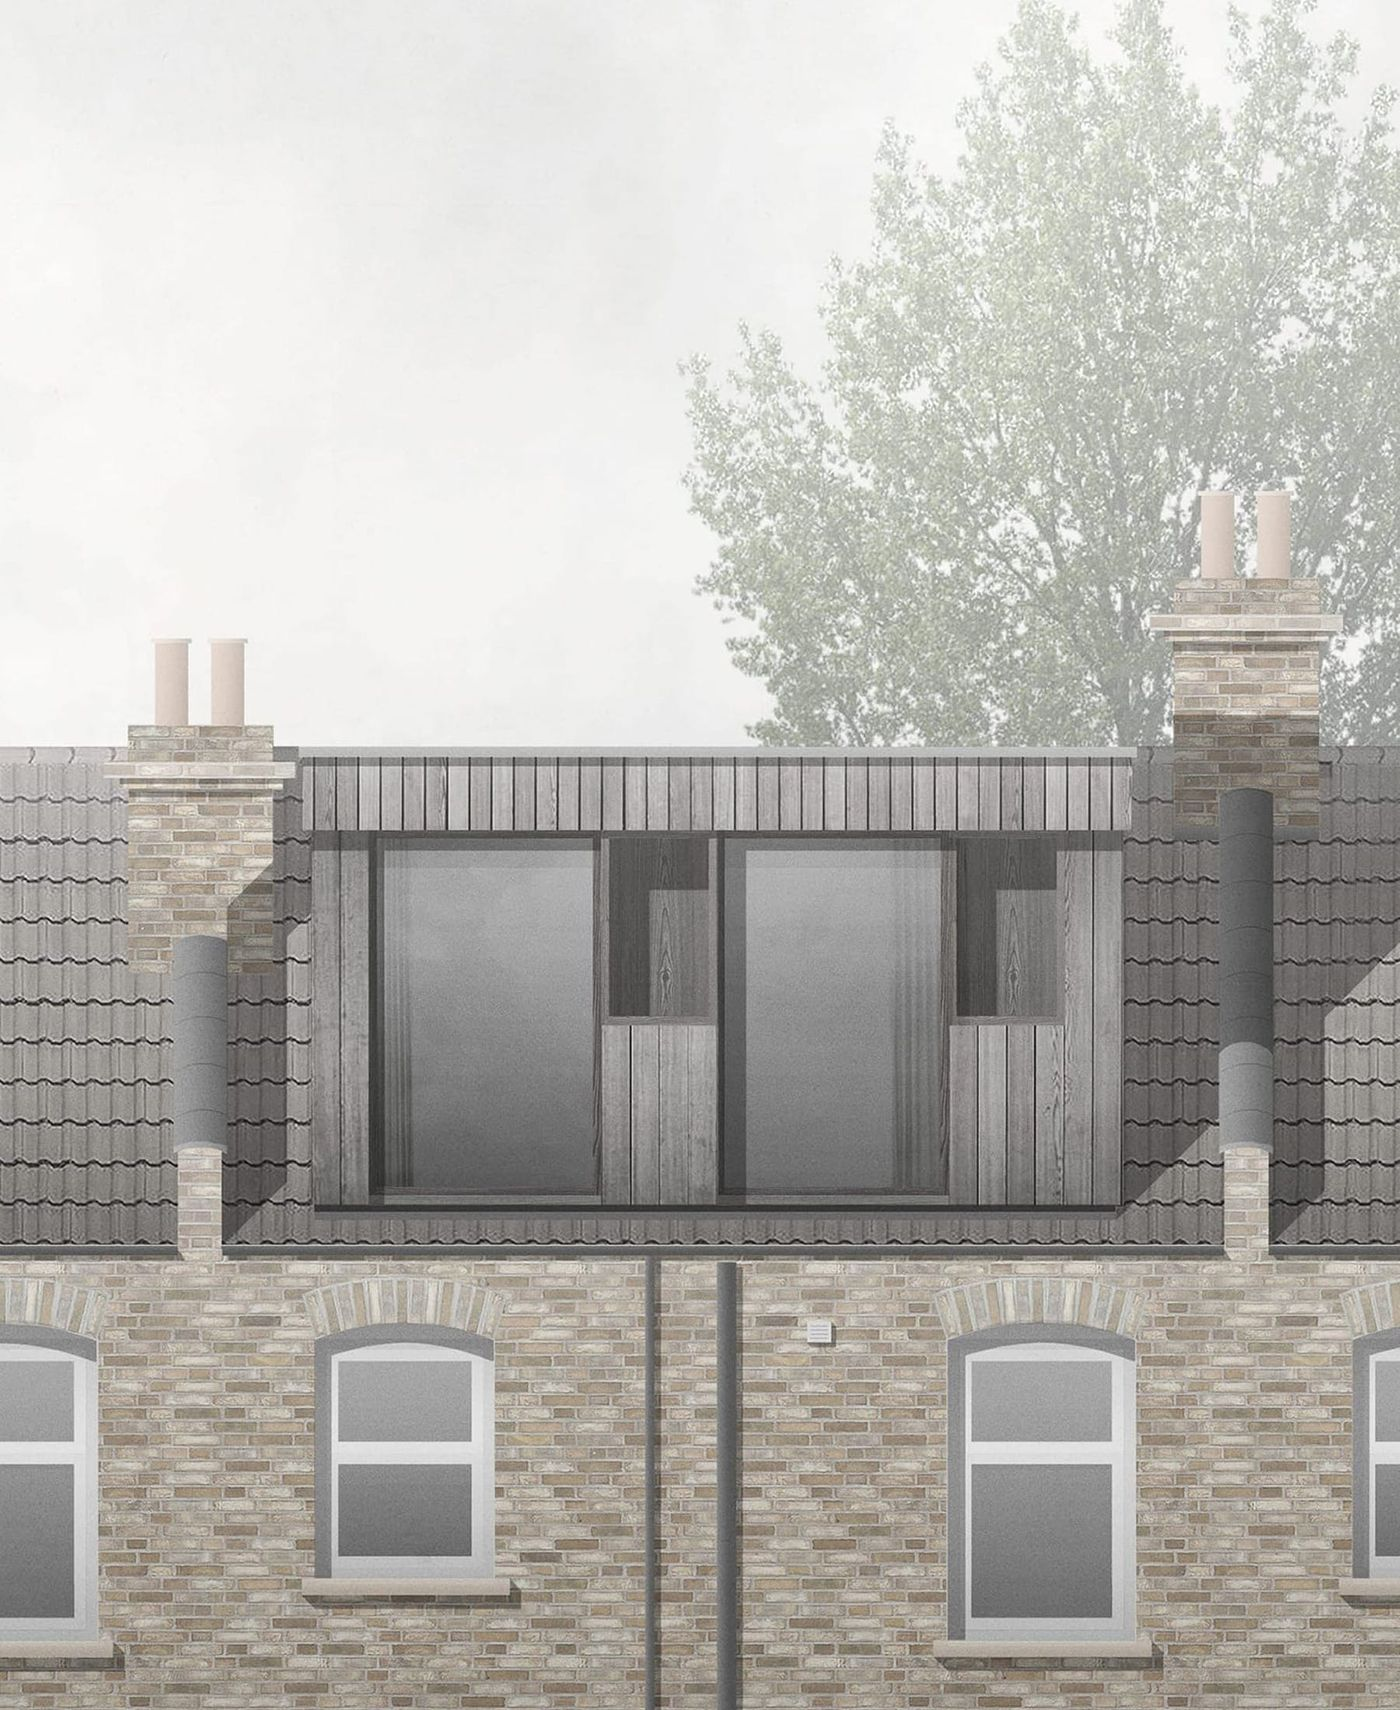 Vertically clad timber clad rear dormer extension and loft conversion at Northbrook Road, London designed by From Works.